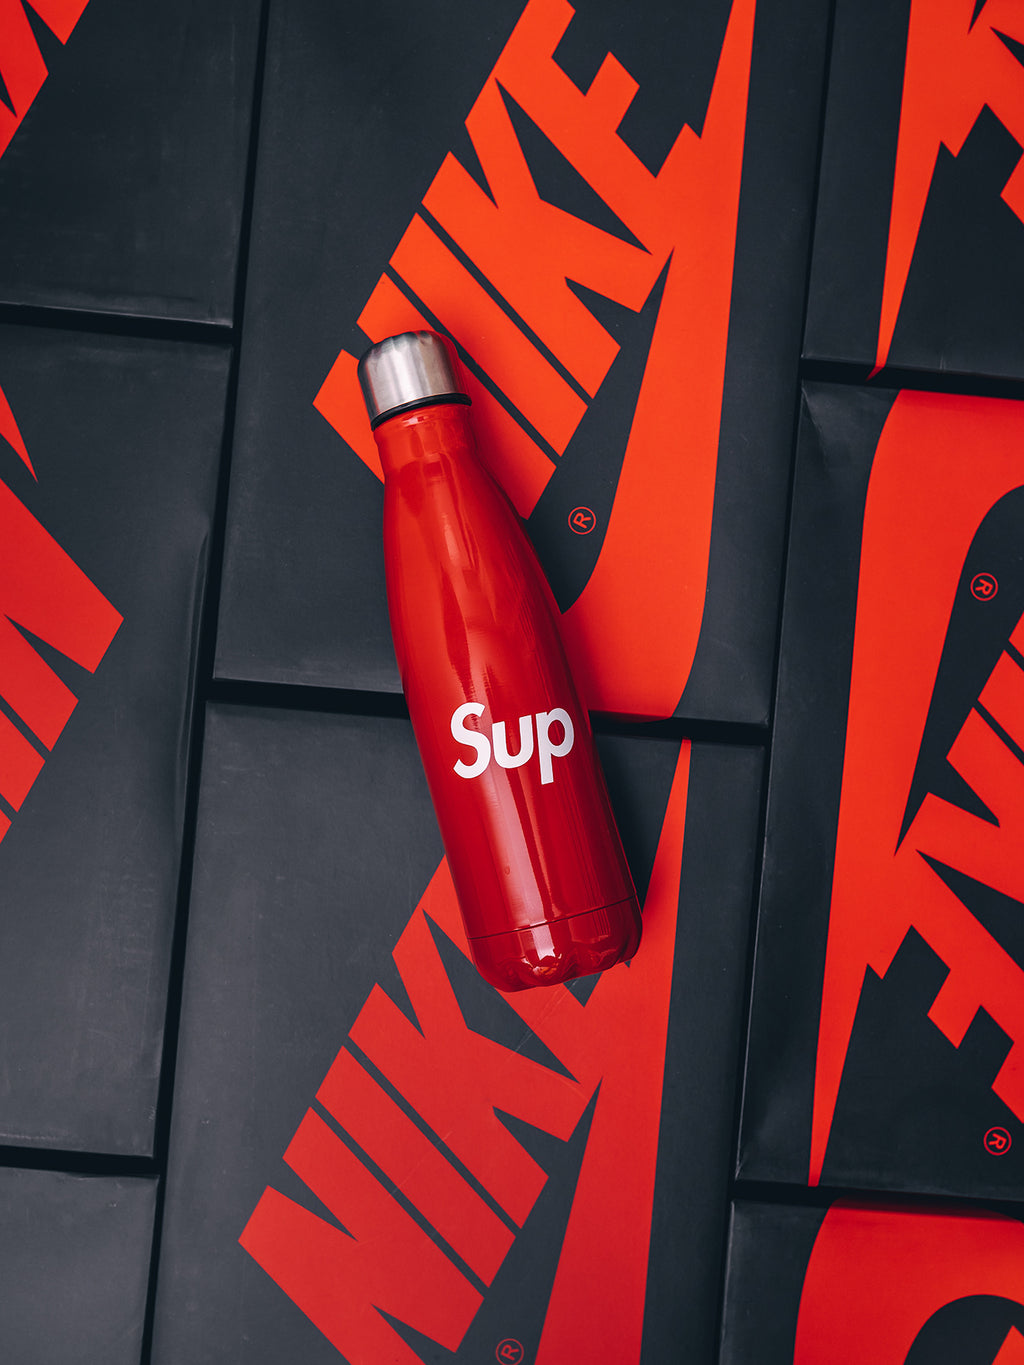 SUP SUSTAINABLE INSULATED BOTTLE